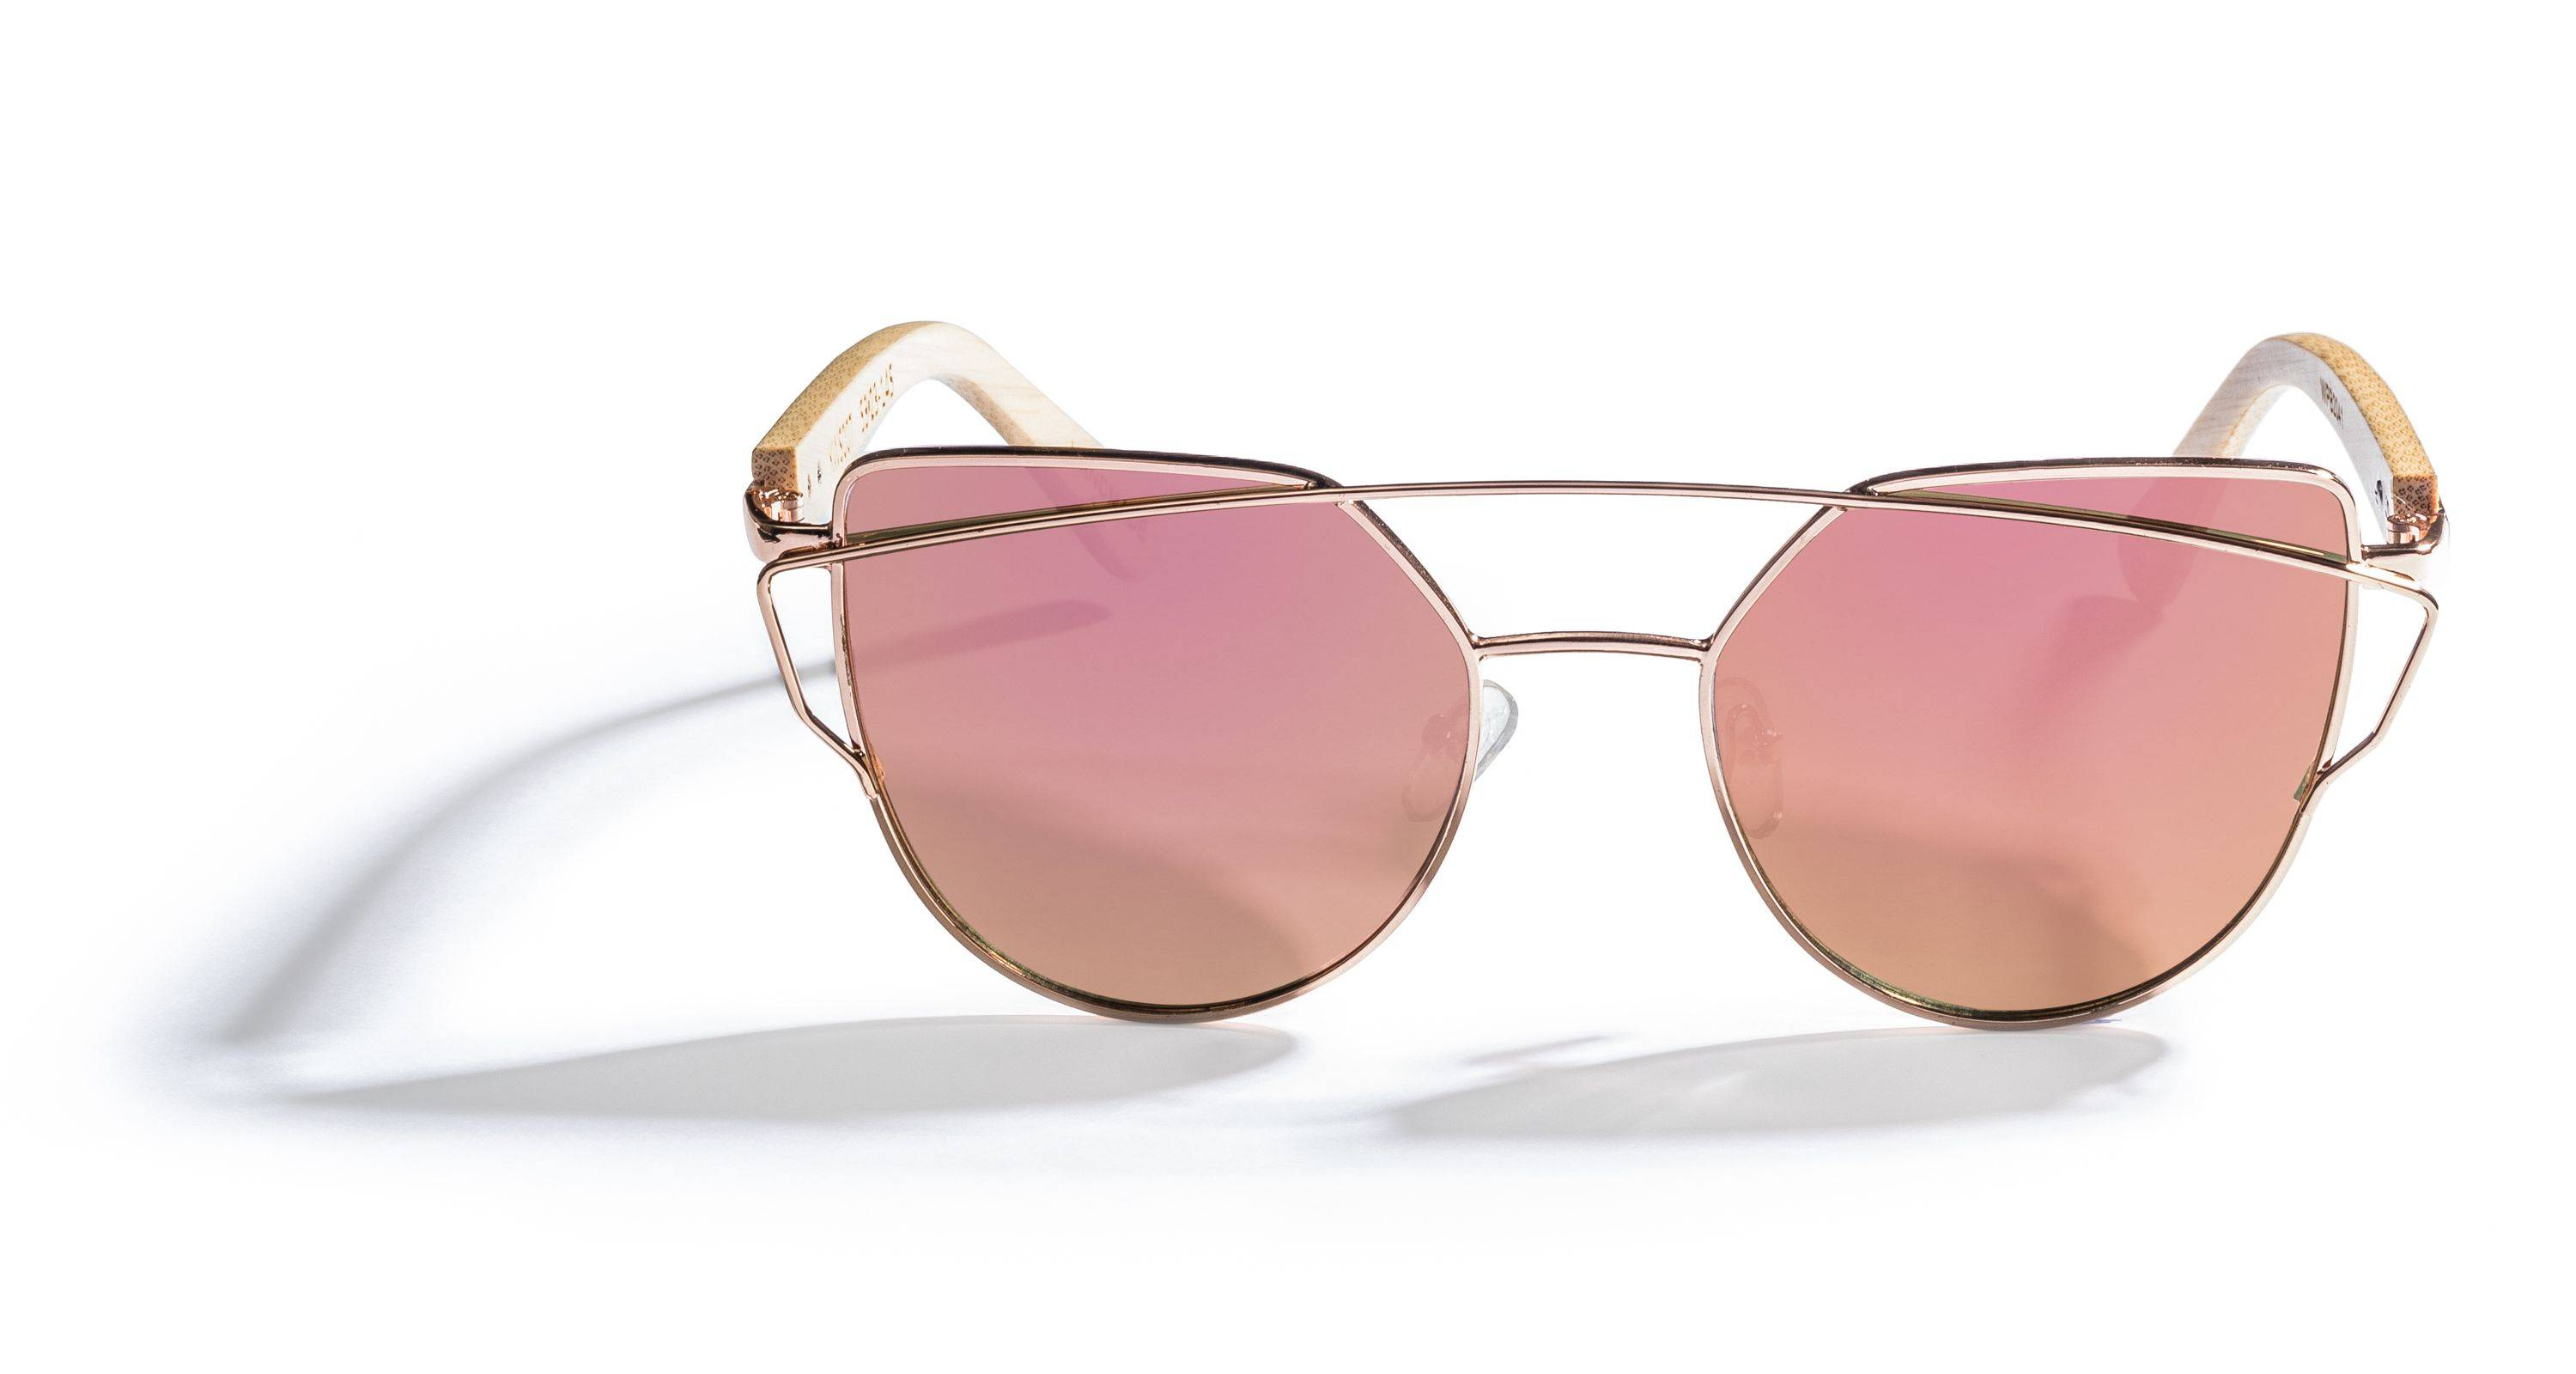 Kraywoods Golden Sun Kiss, Flashy Sunglasses made from Bamboo wood with 100% UV Protection Rose Gold Lenses